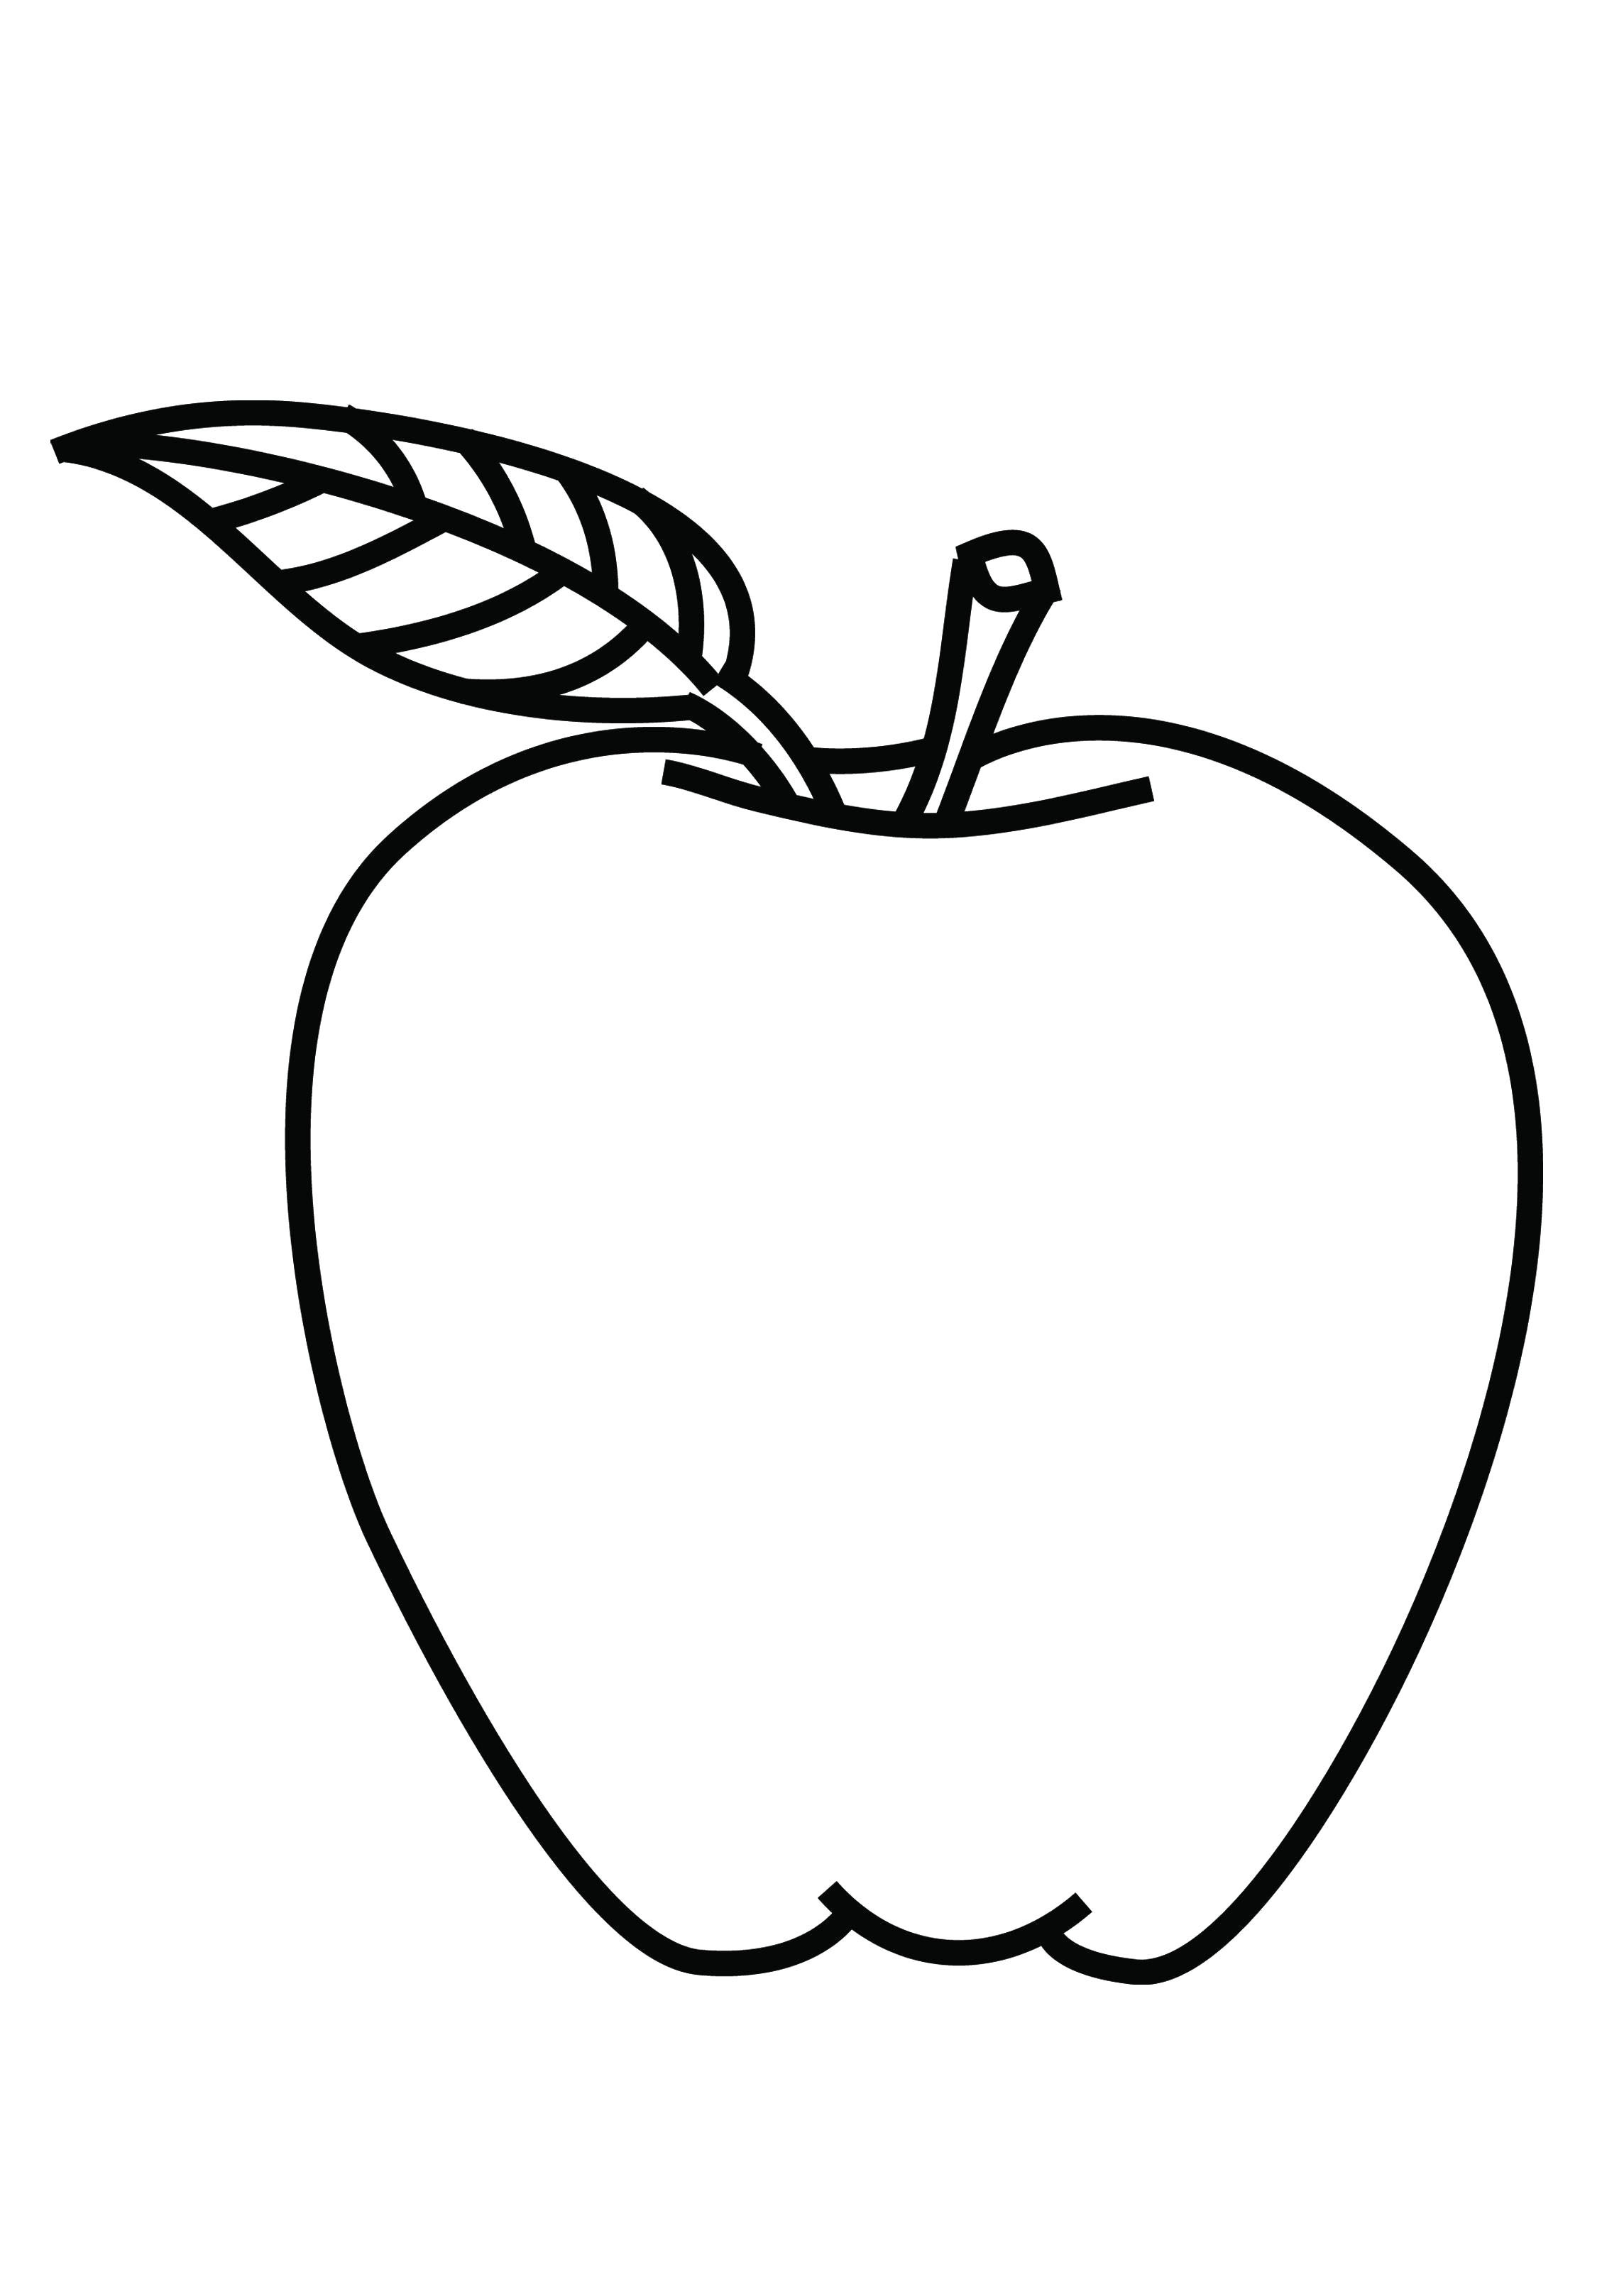 Coloring Pages You Can Color On The Computer : Coloring page of apple clipart best